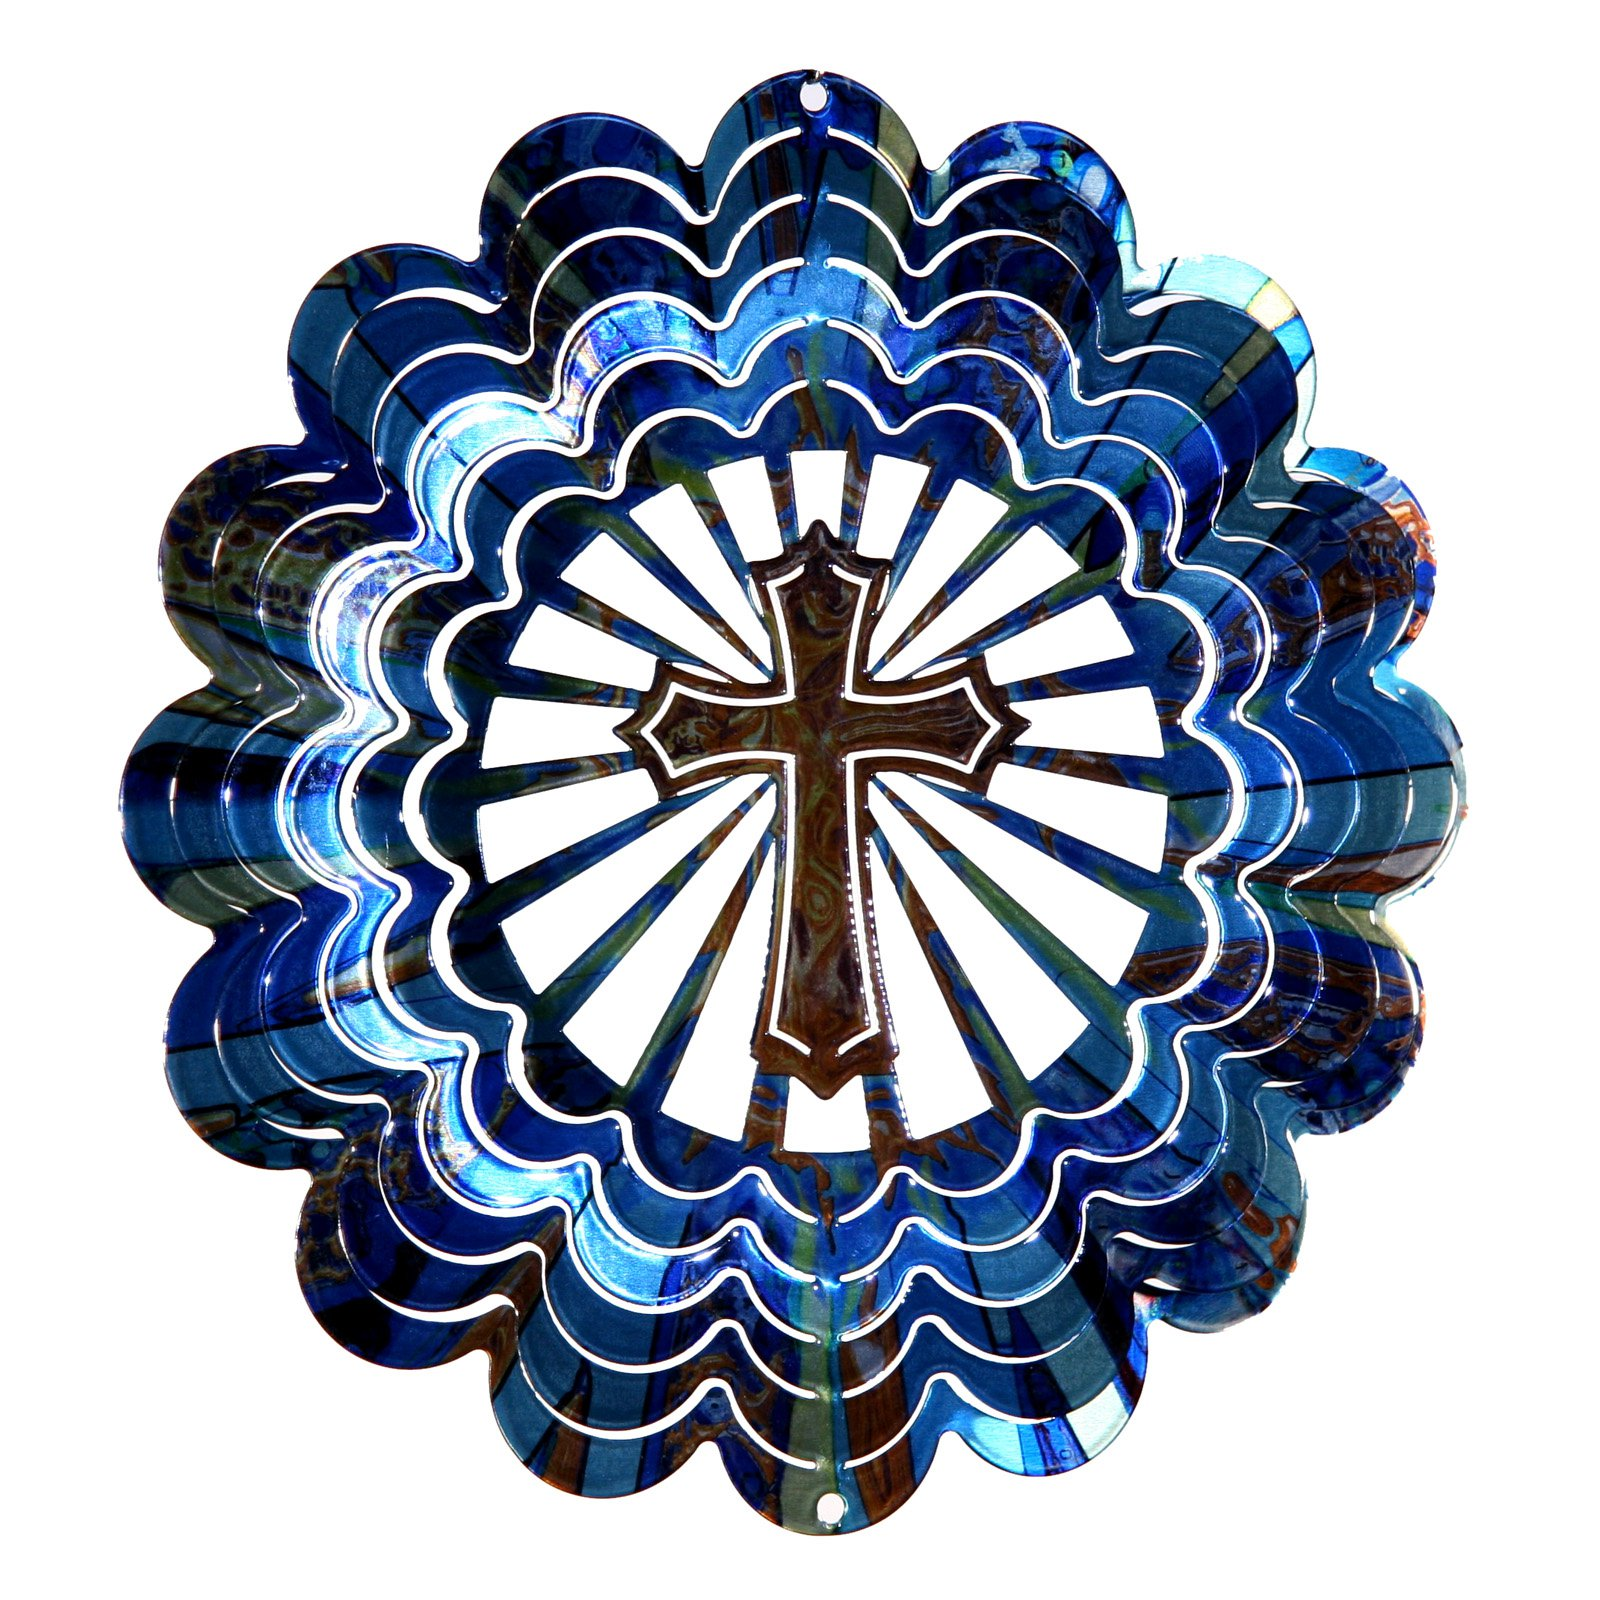 Next Innovations Kaleidoscope Cross Wind Spinner by Wind Spinners